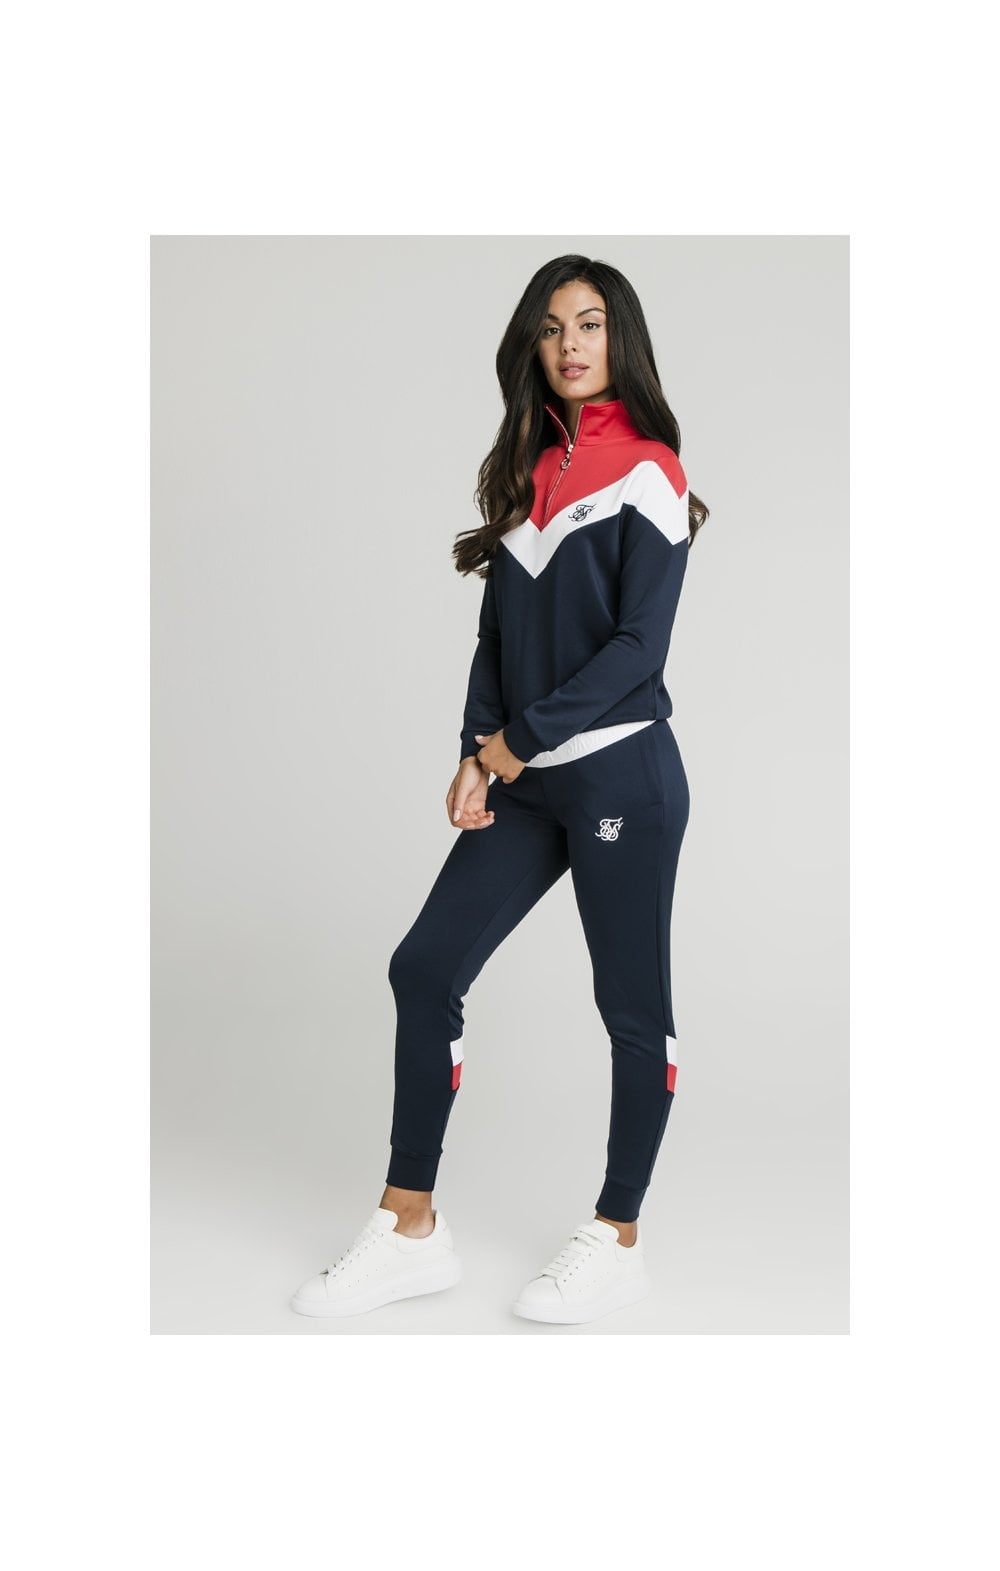 SikSilk Retro Sport Track Top - Navy, Red & White (2)